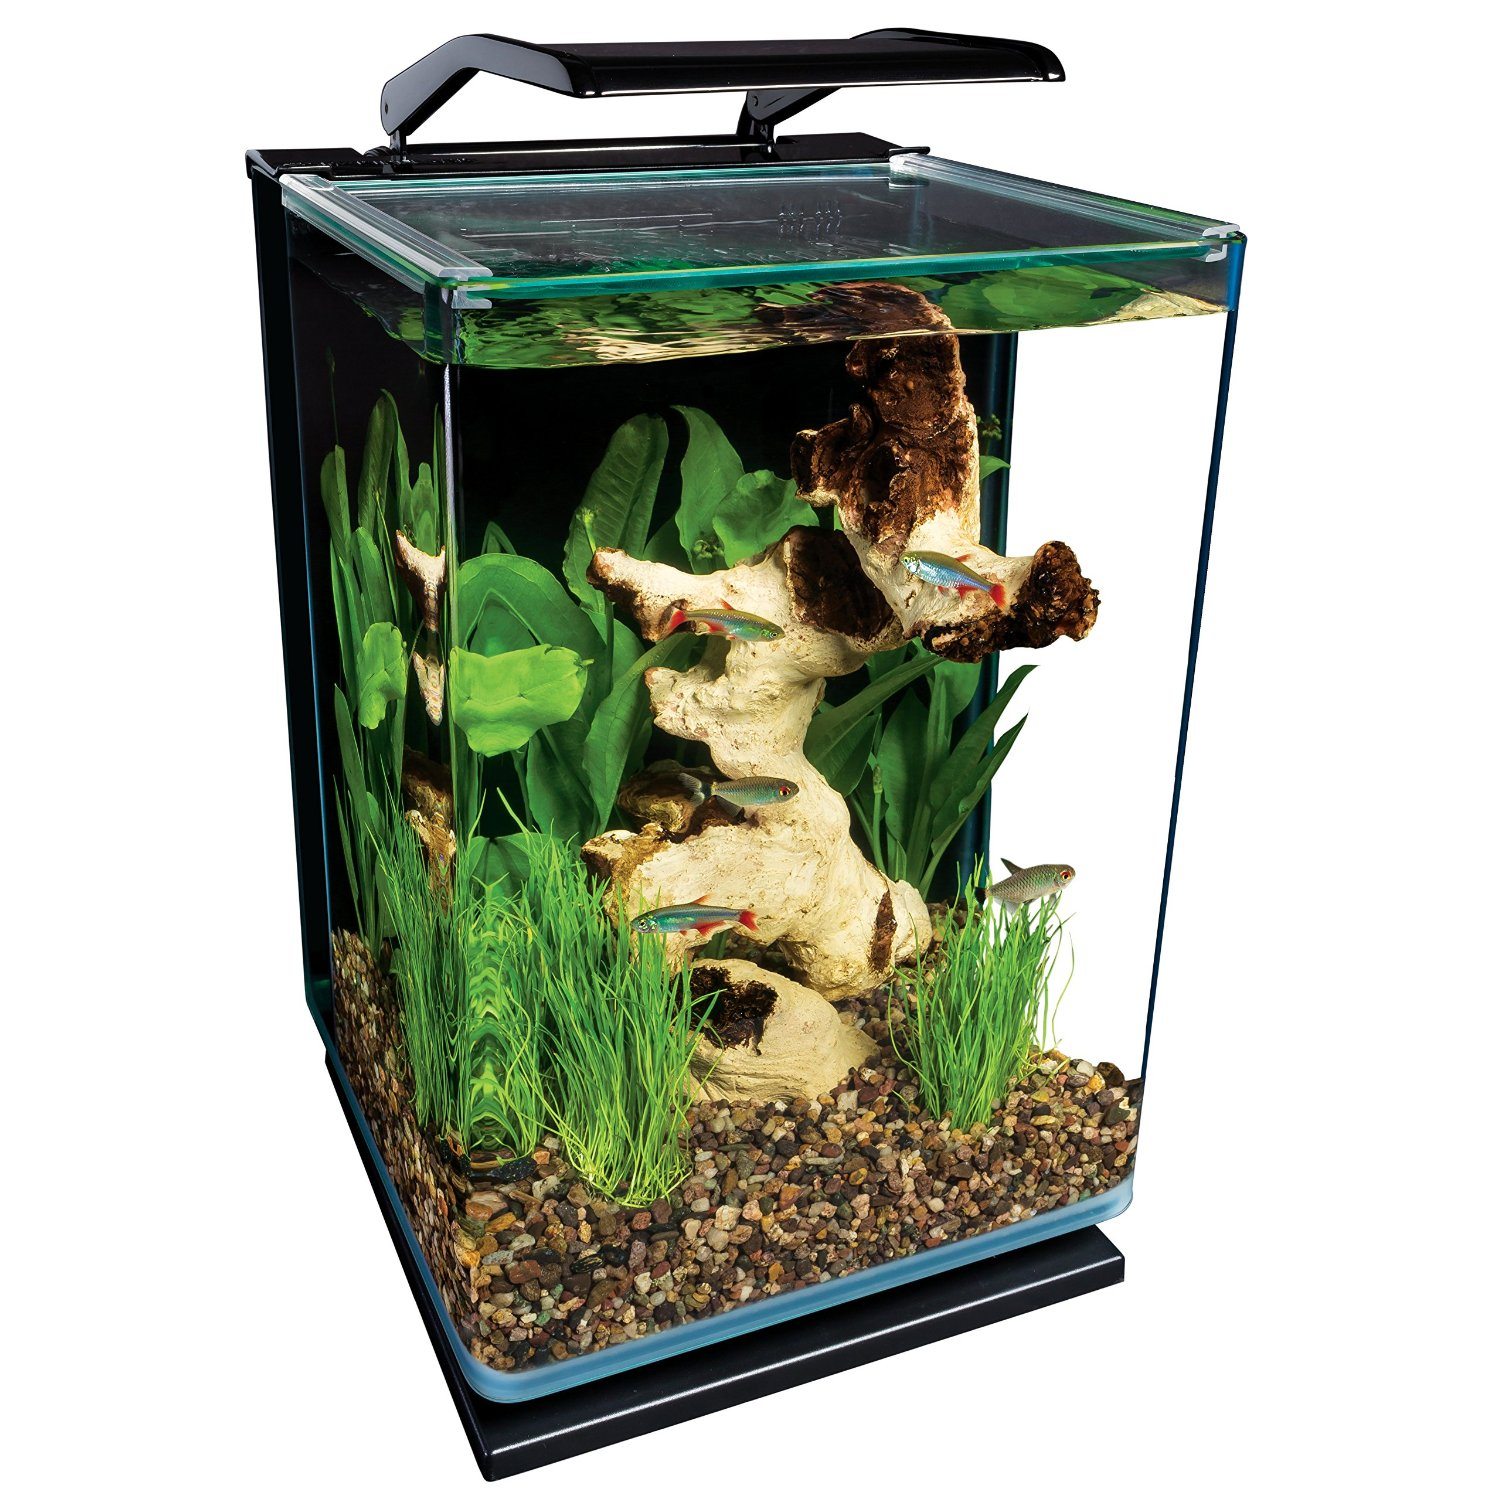 Fish for aquarium online - Fish For Aquarium Online